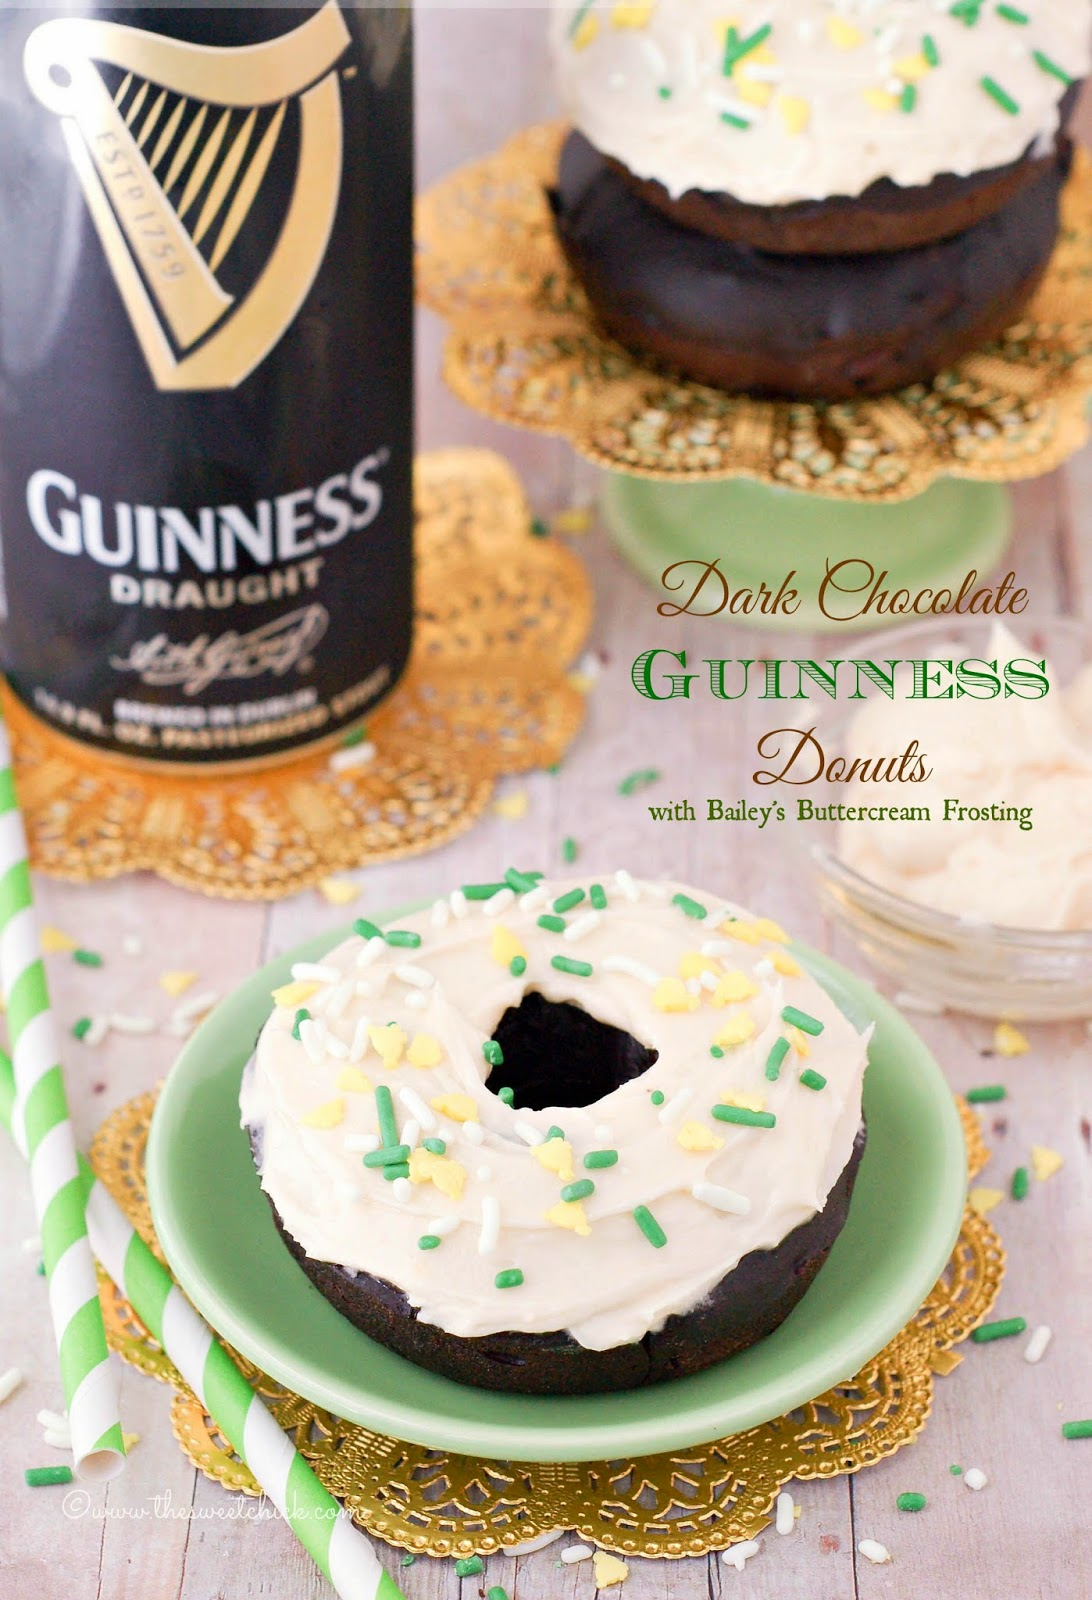 Dark Chocolate Guinness Donuts with Bailey's Buttercream Frosting by The Sweet Chick